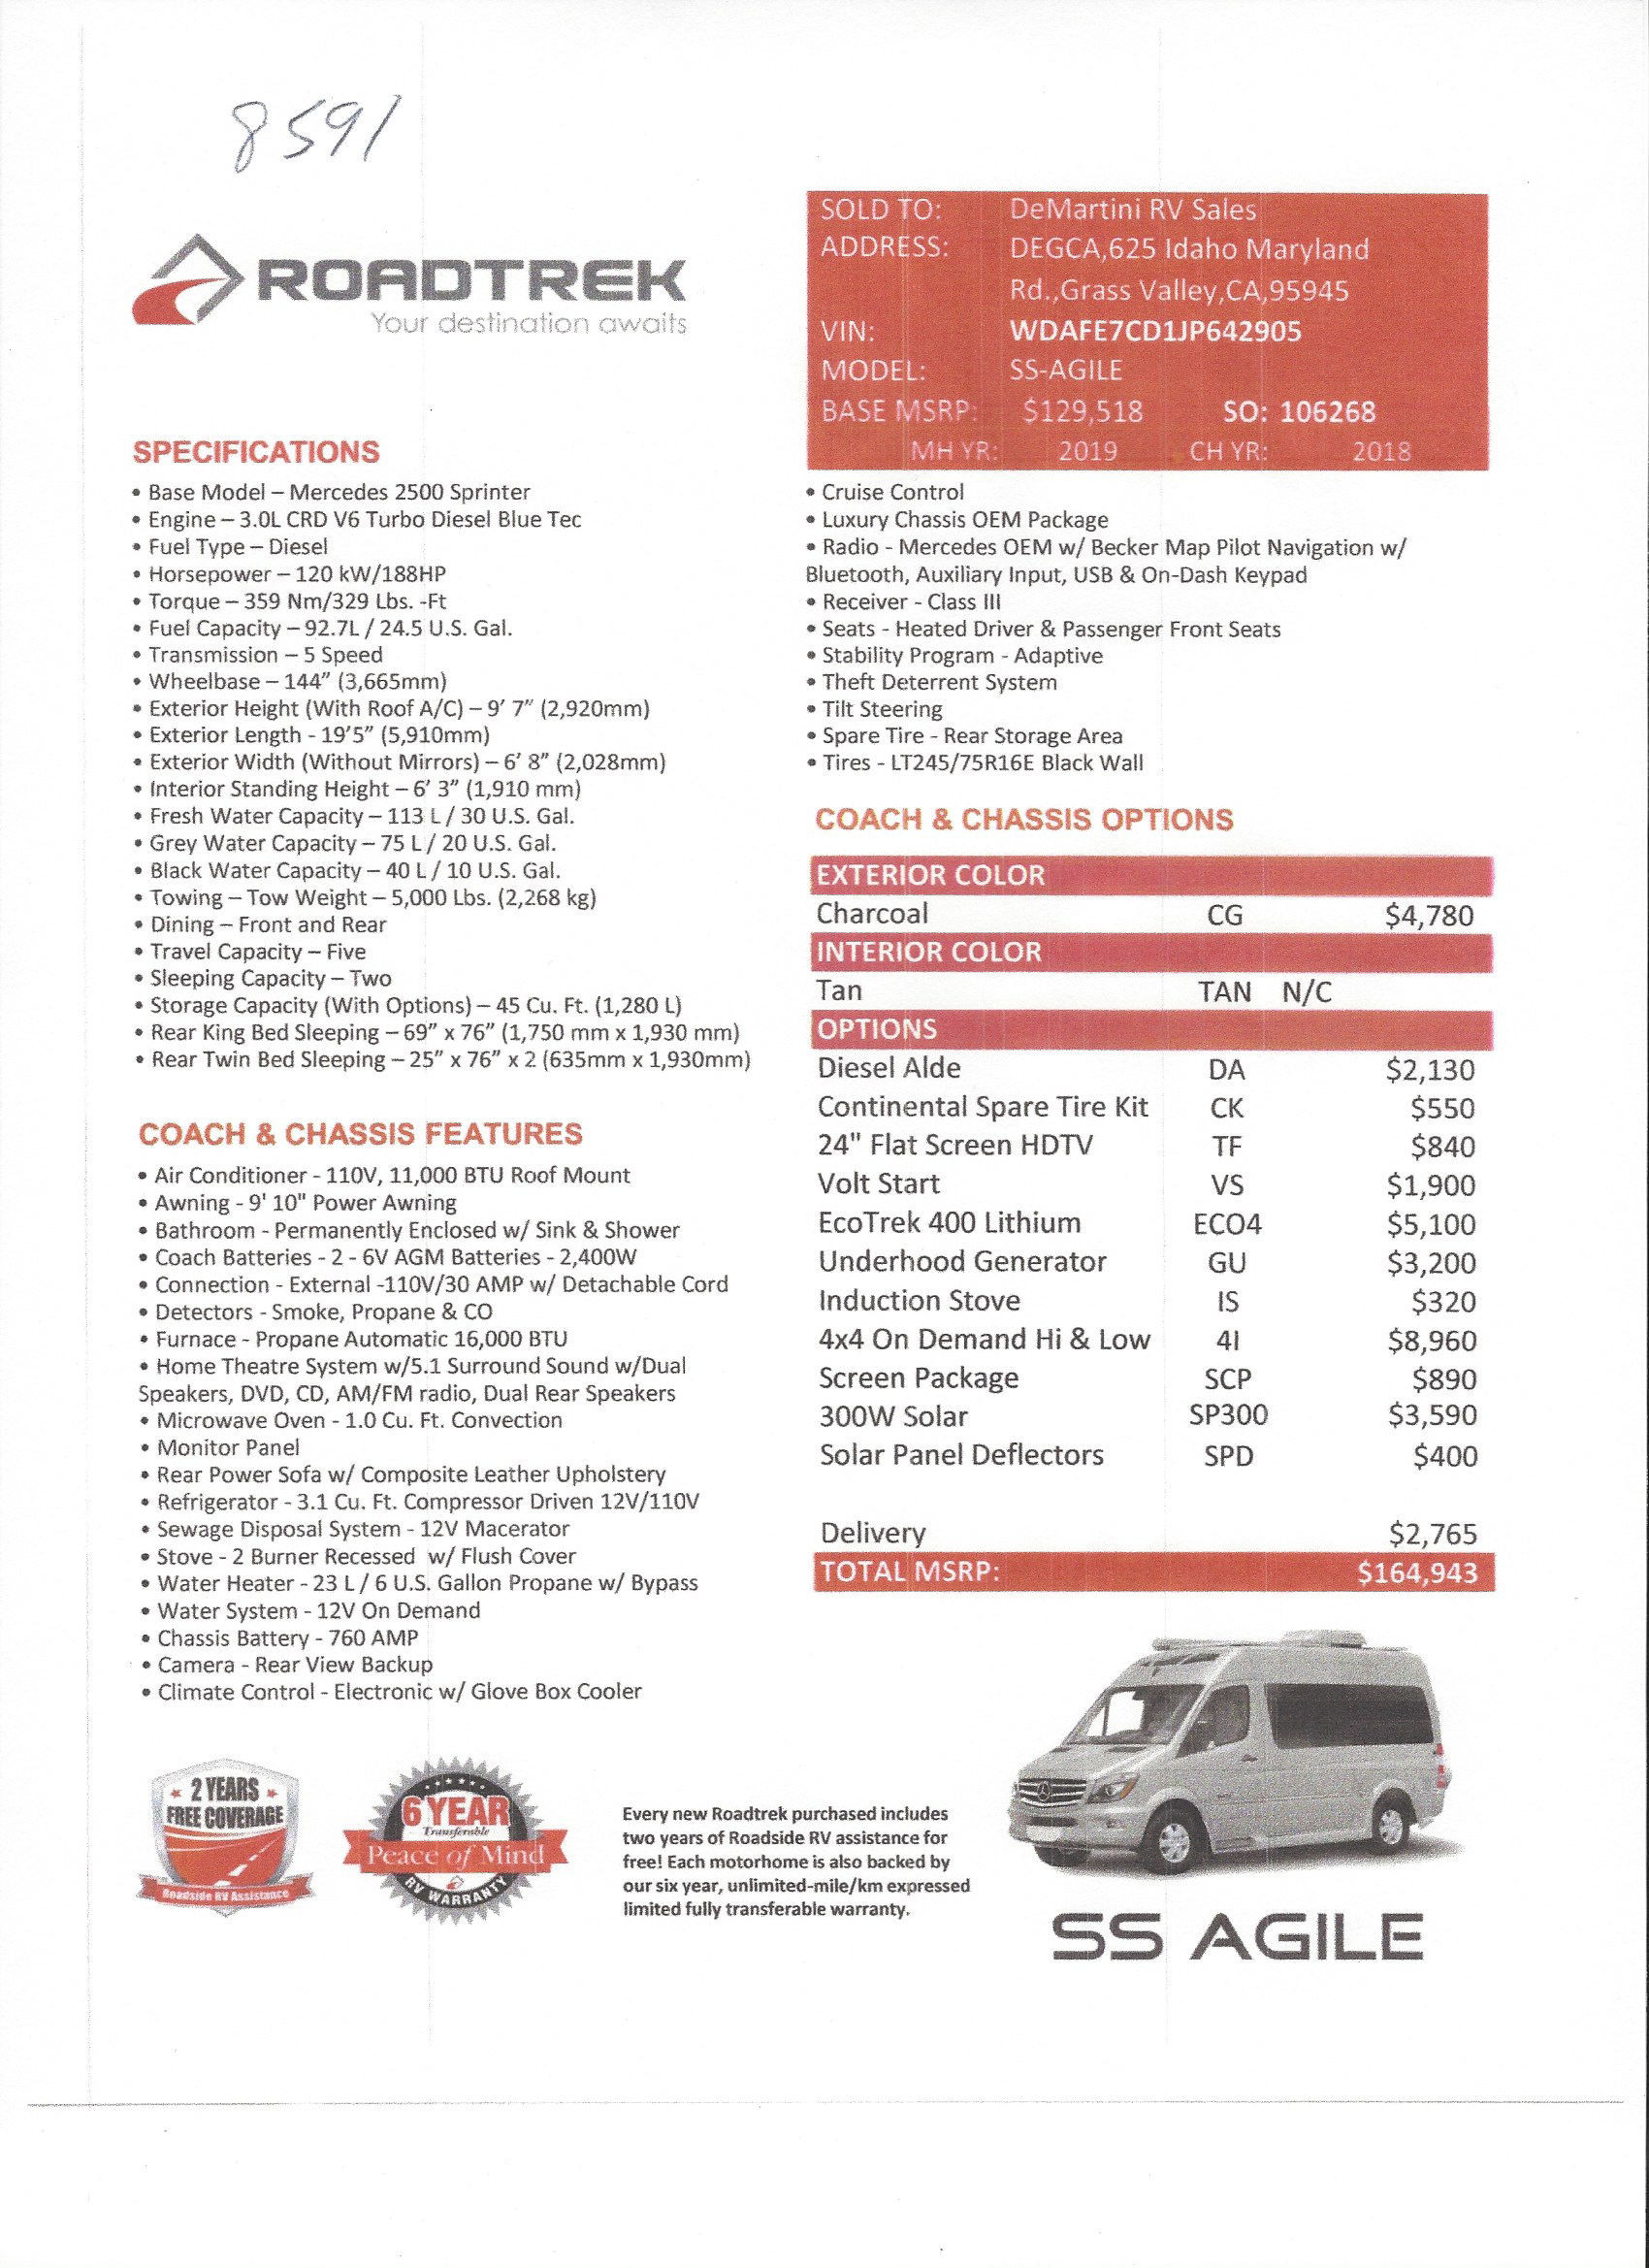 2019 ROADTREK SS AGILE 4X4 MSRP Sheet